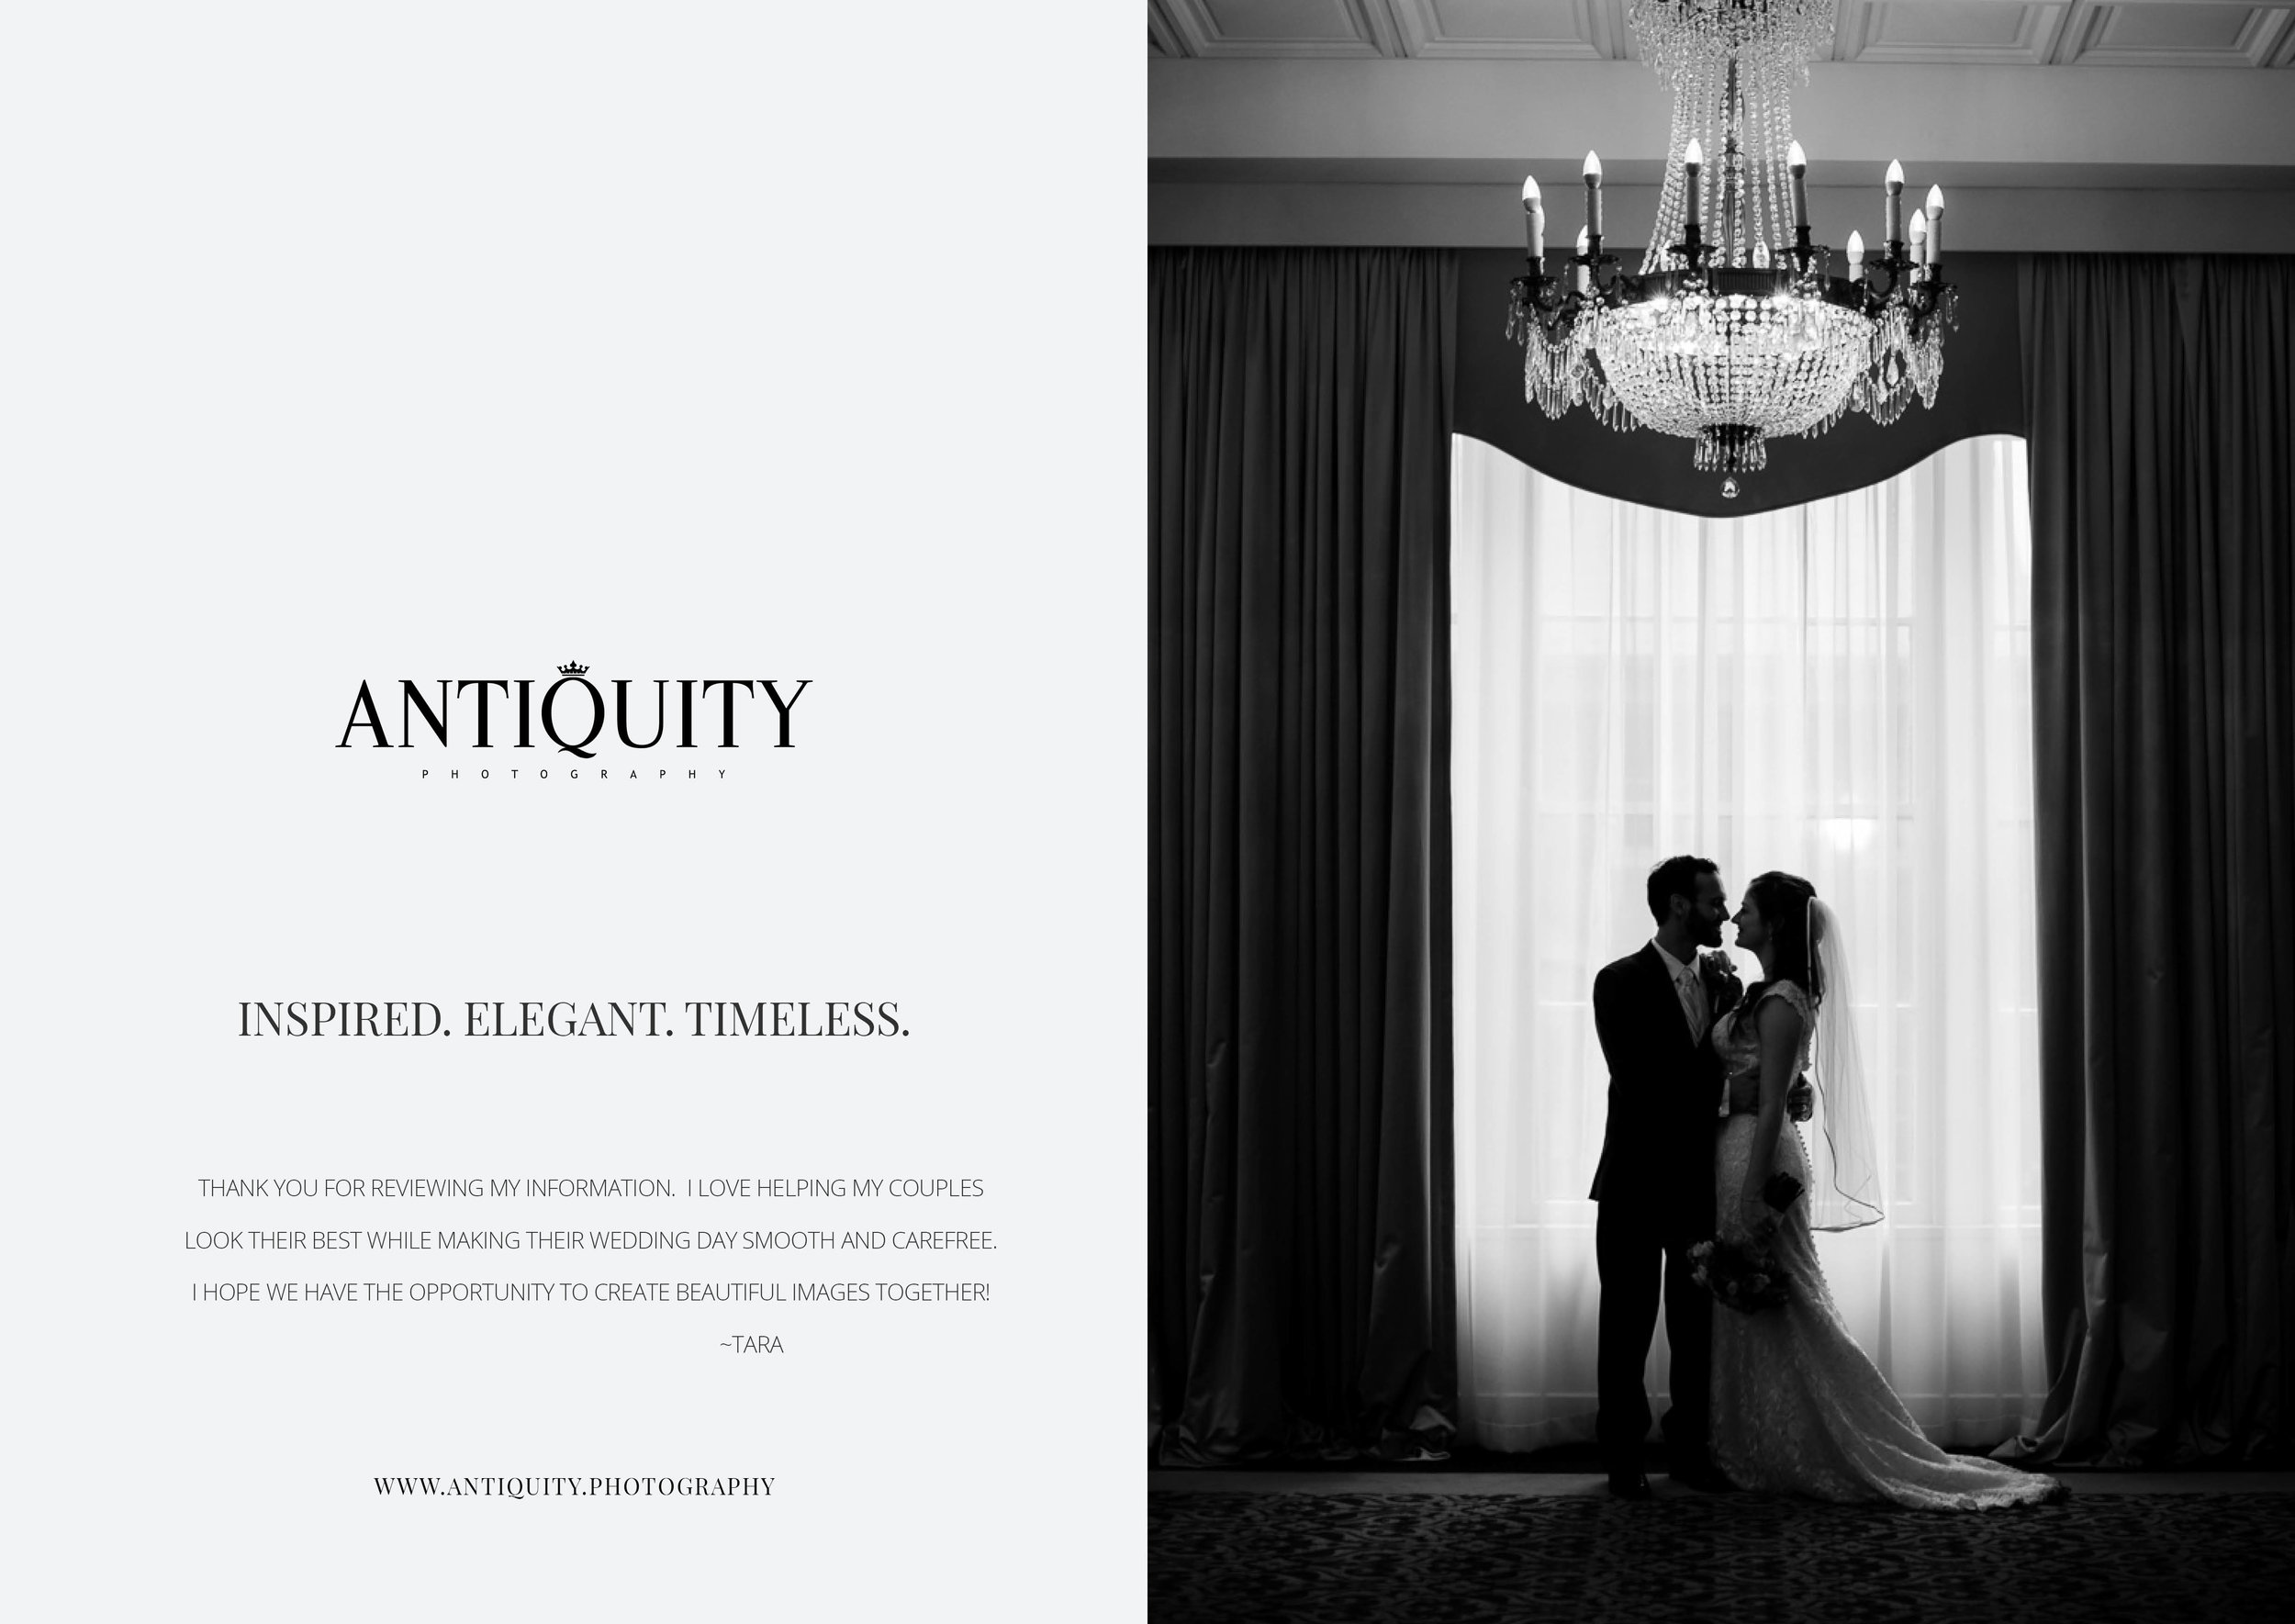 Antiquity Photgraphy Bridal Magazine JPGS27.jpg